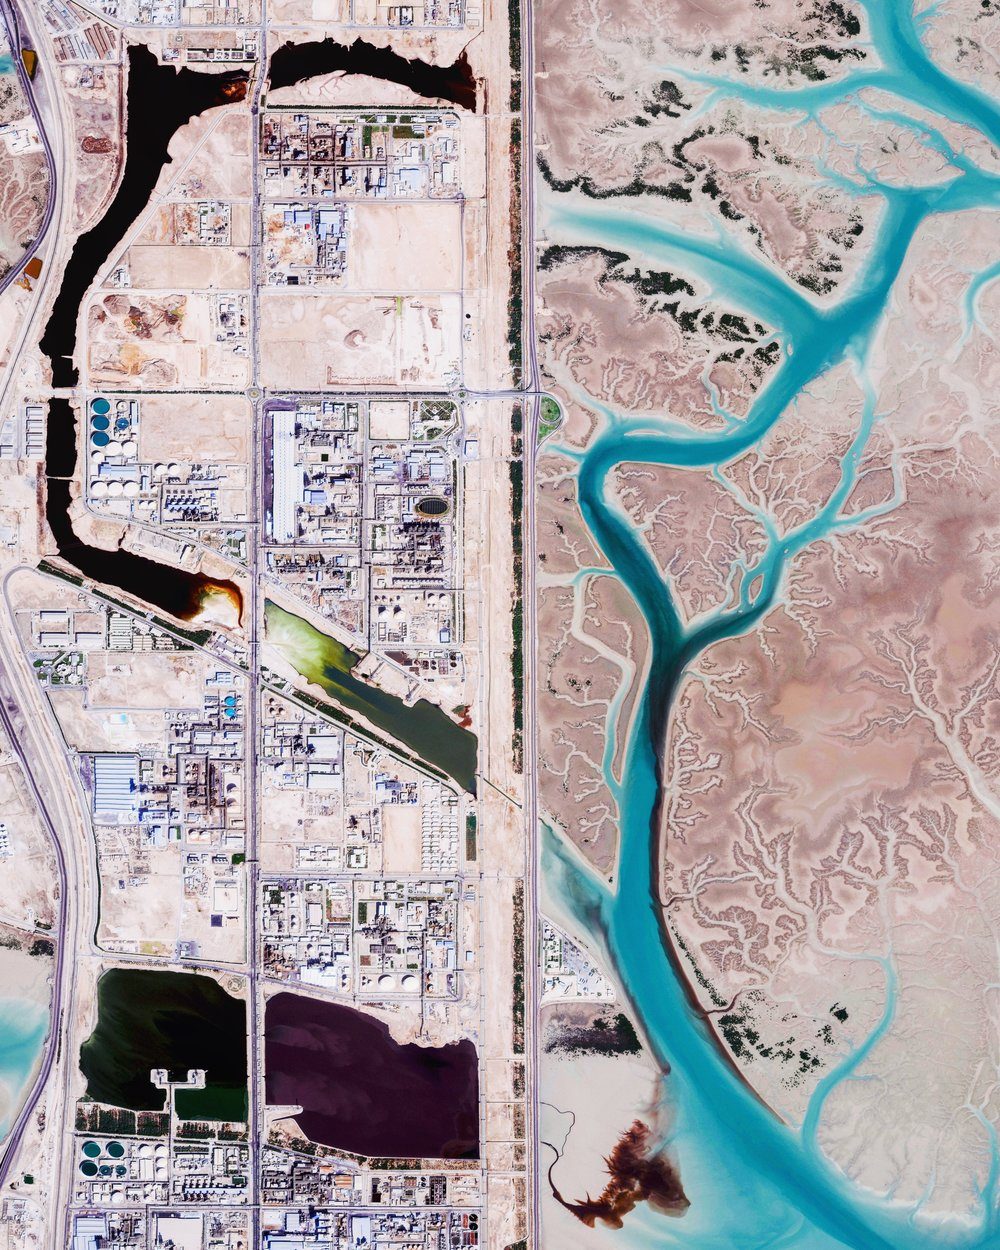 "The Bandar Imam Khomeini petrochemical complex is Iran's largest supplier of petrochemicals for export, generating millions of tons of petroleum-based products every year. Located in Iran's southwestern Khuzestan Province, the complex is seen in this Overview adjacent to Musa Bay, a shallow estuary that empties into the Persian Gulf.  30°28'18.0""N, 49°05'58.0""E  Source imagery: DigitalGlobe"